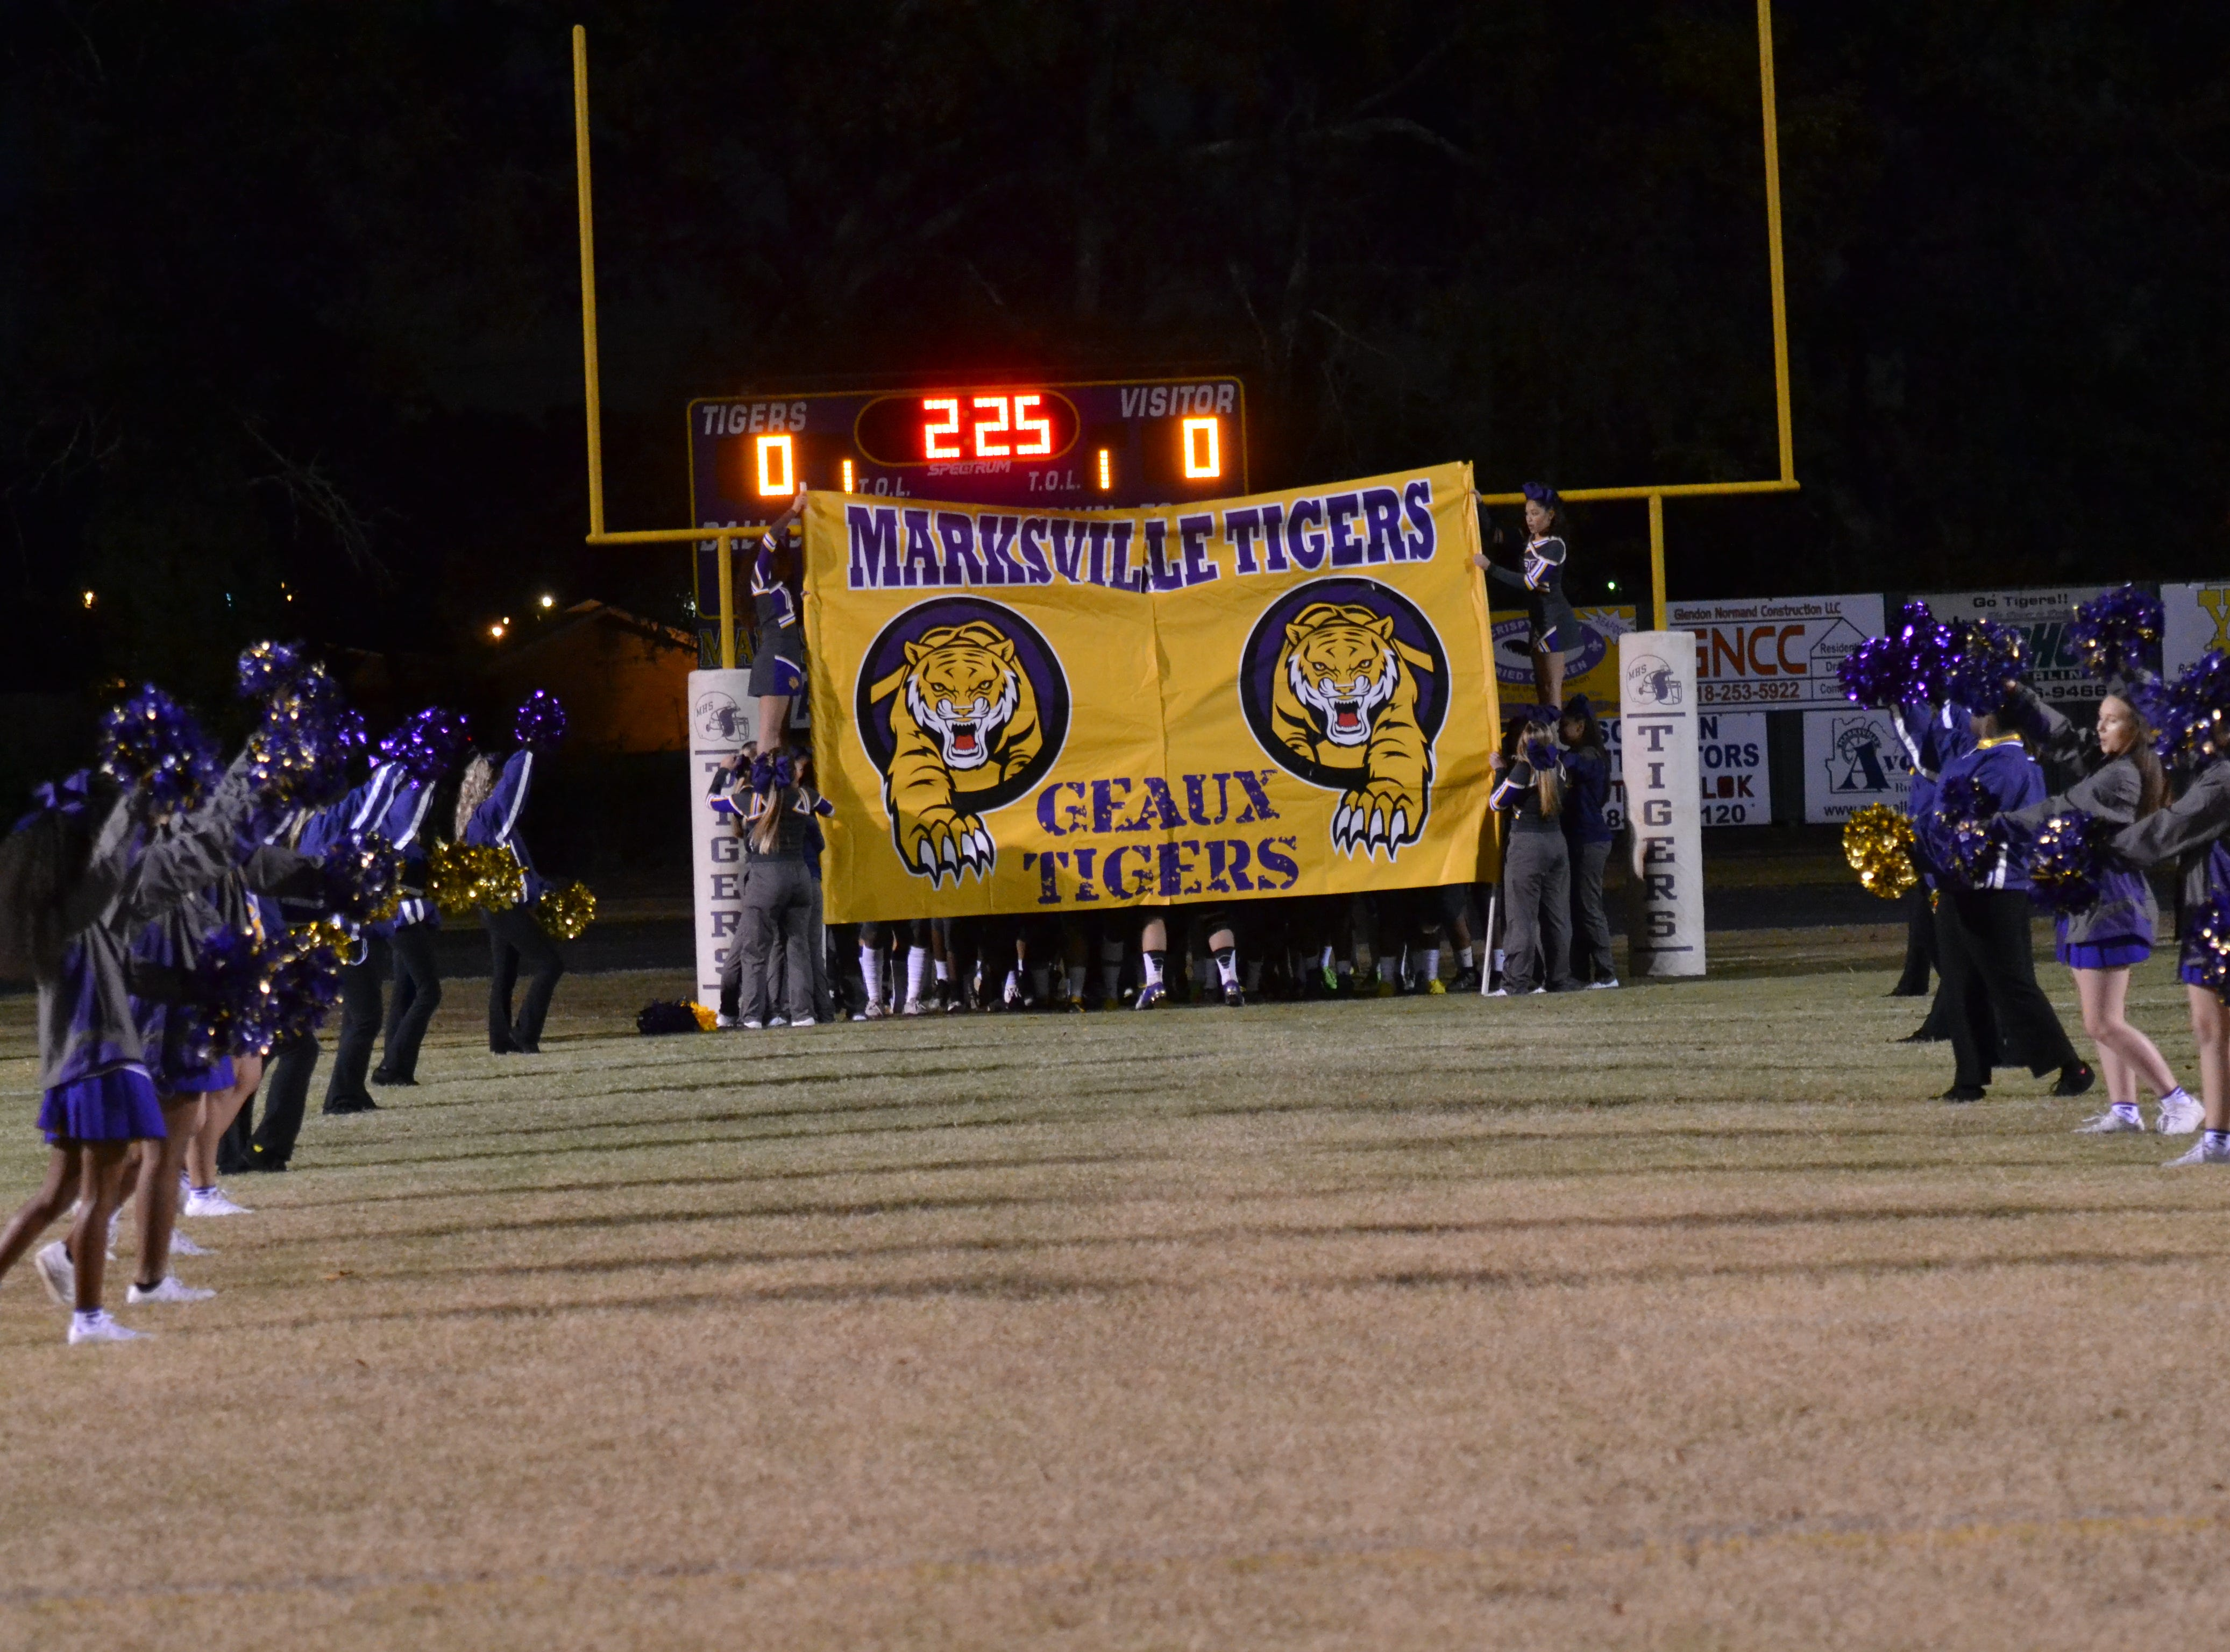 The Marksville Tigers get ready to take on Caldwell Friday night in the season finale at Marksville. Caldwell won the game 13-8.